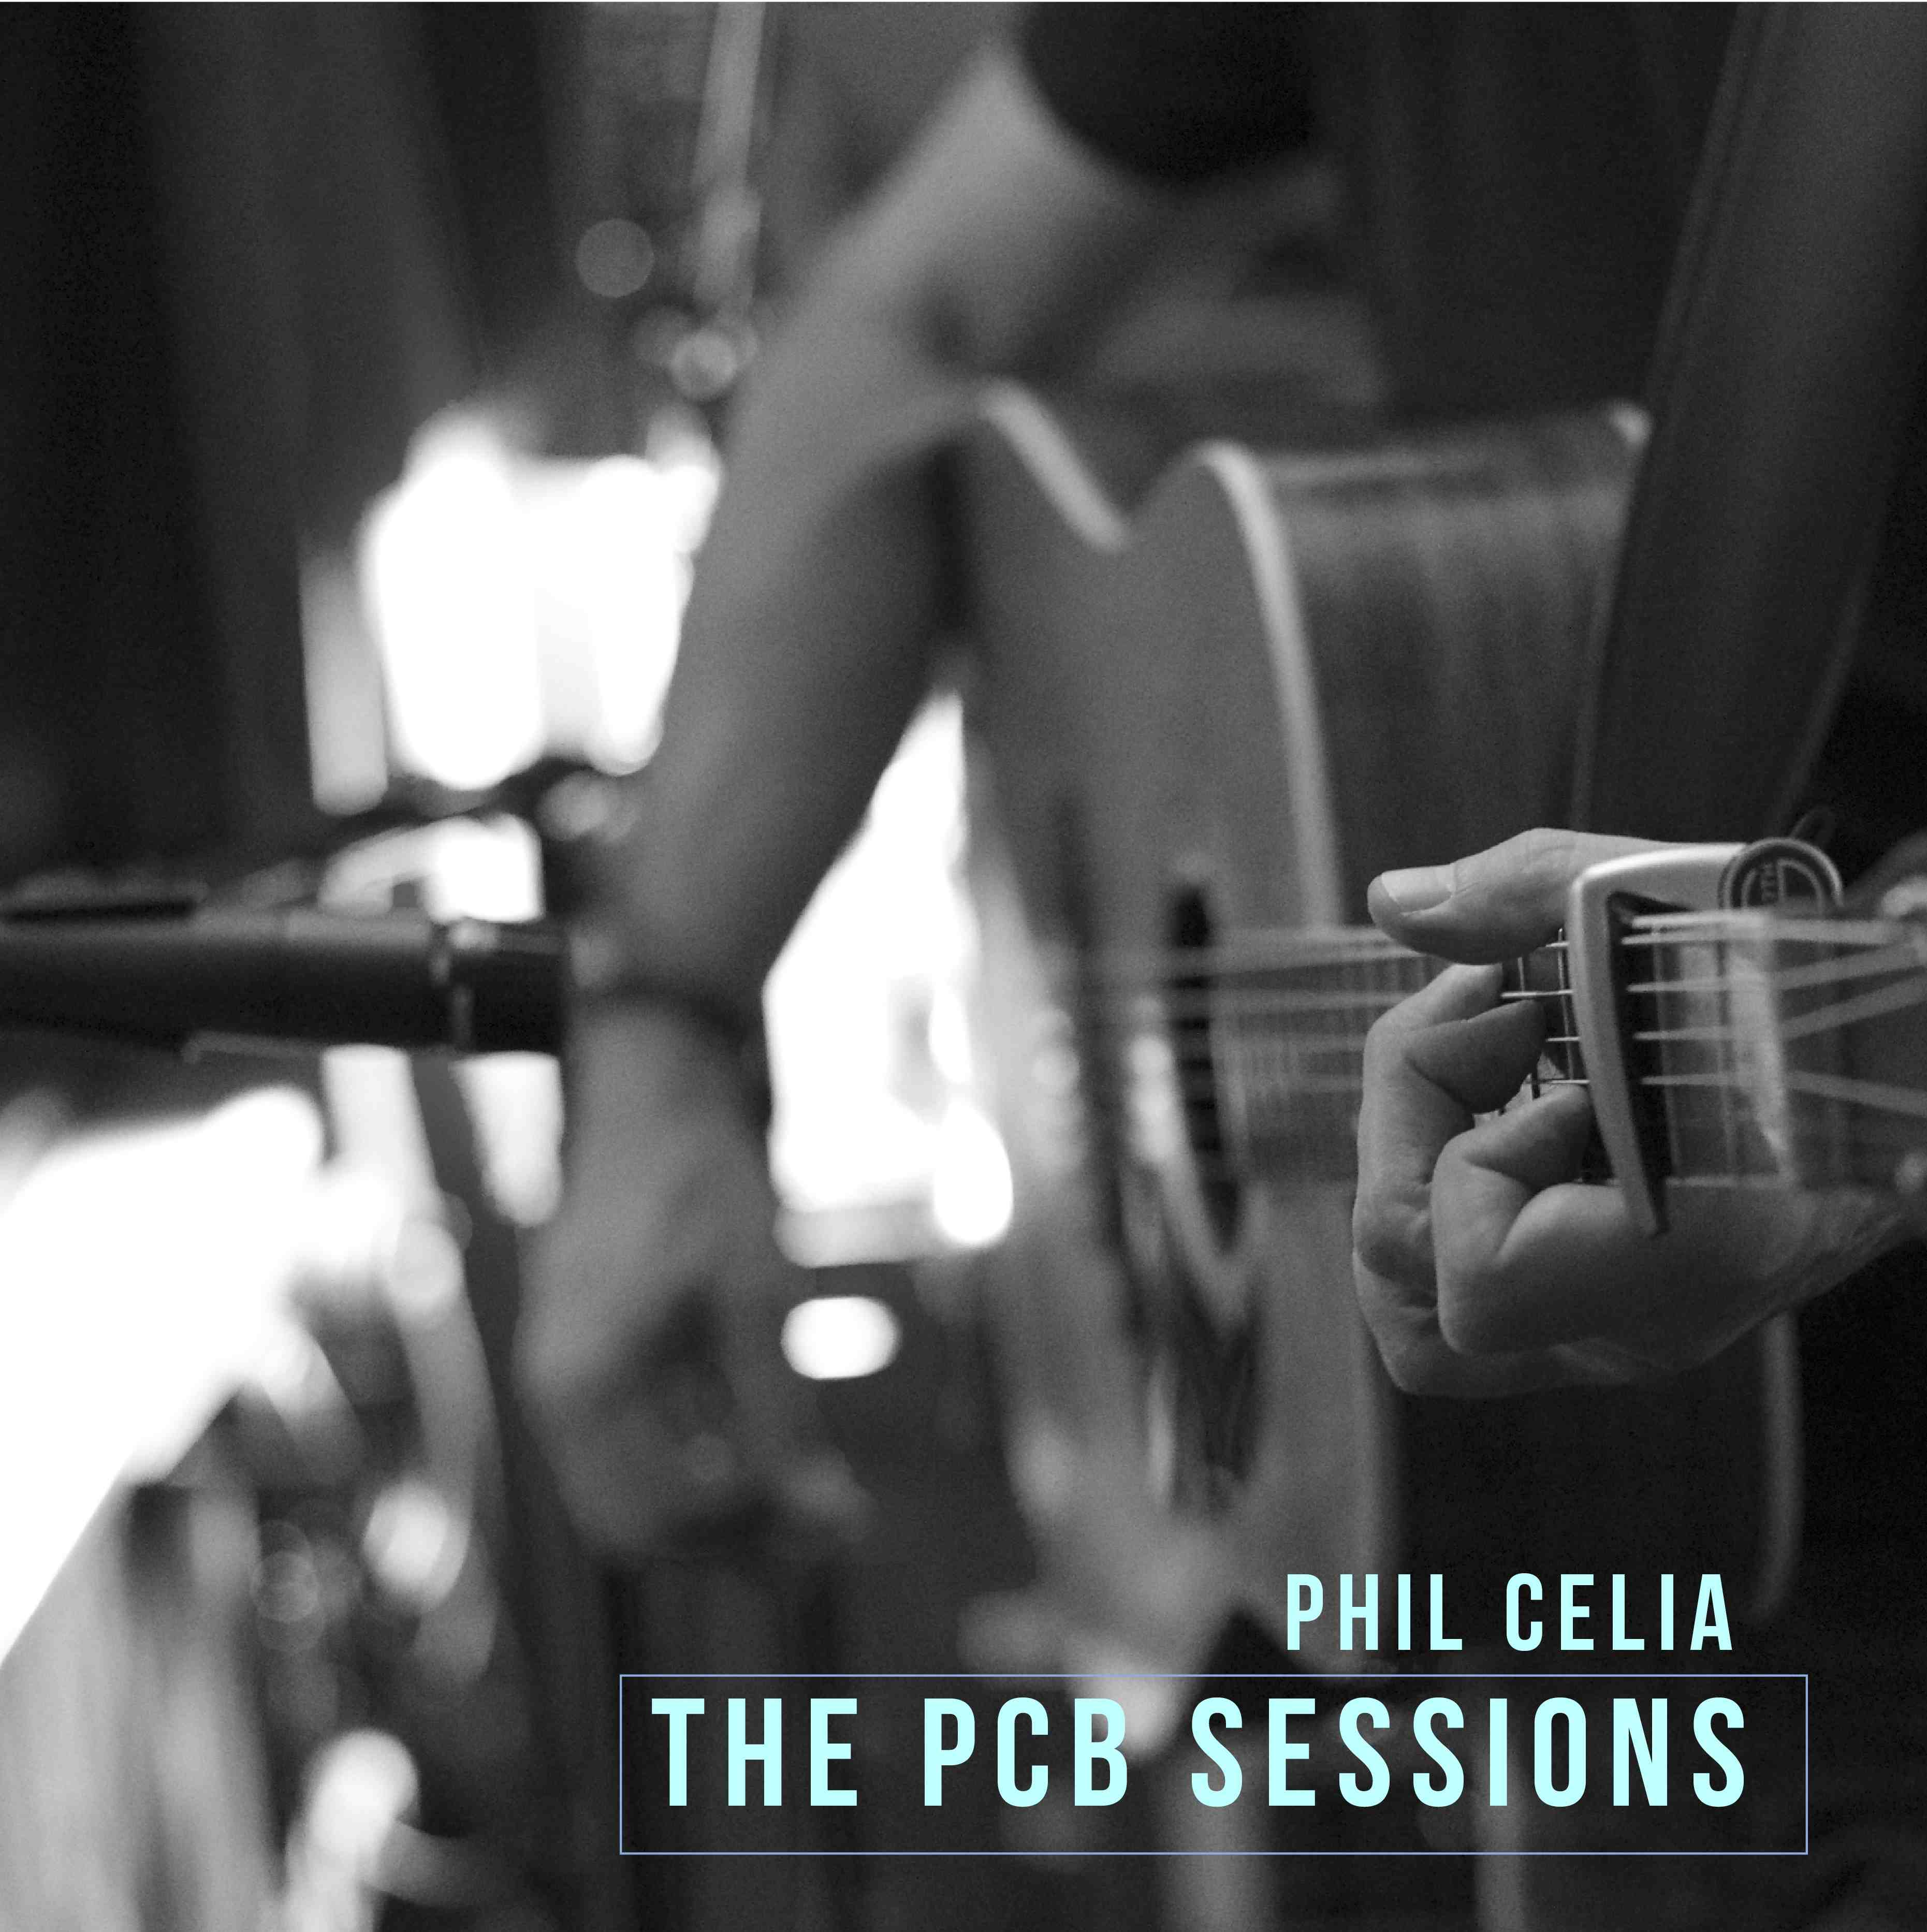 The PCB Sessions